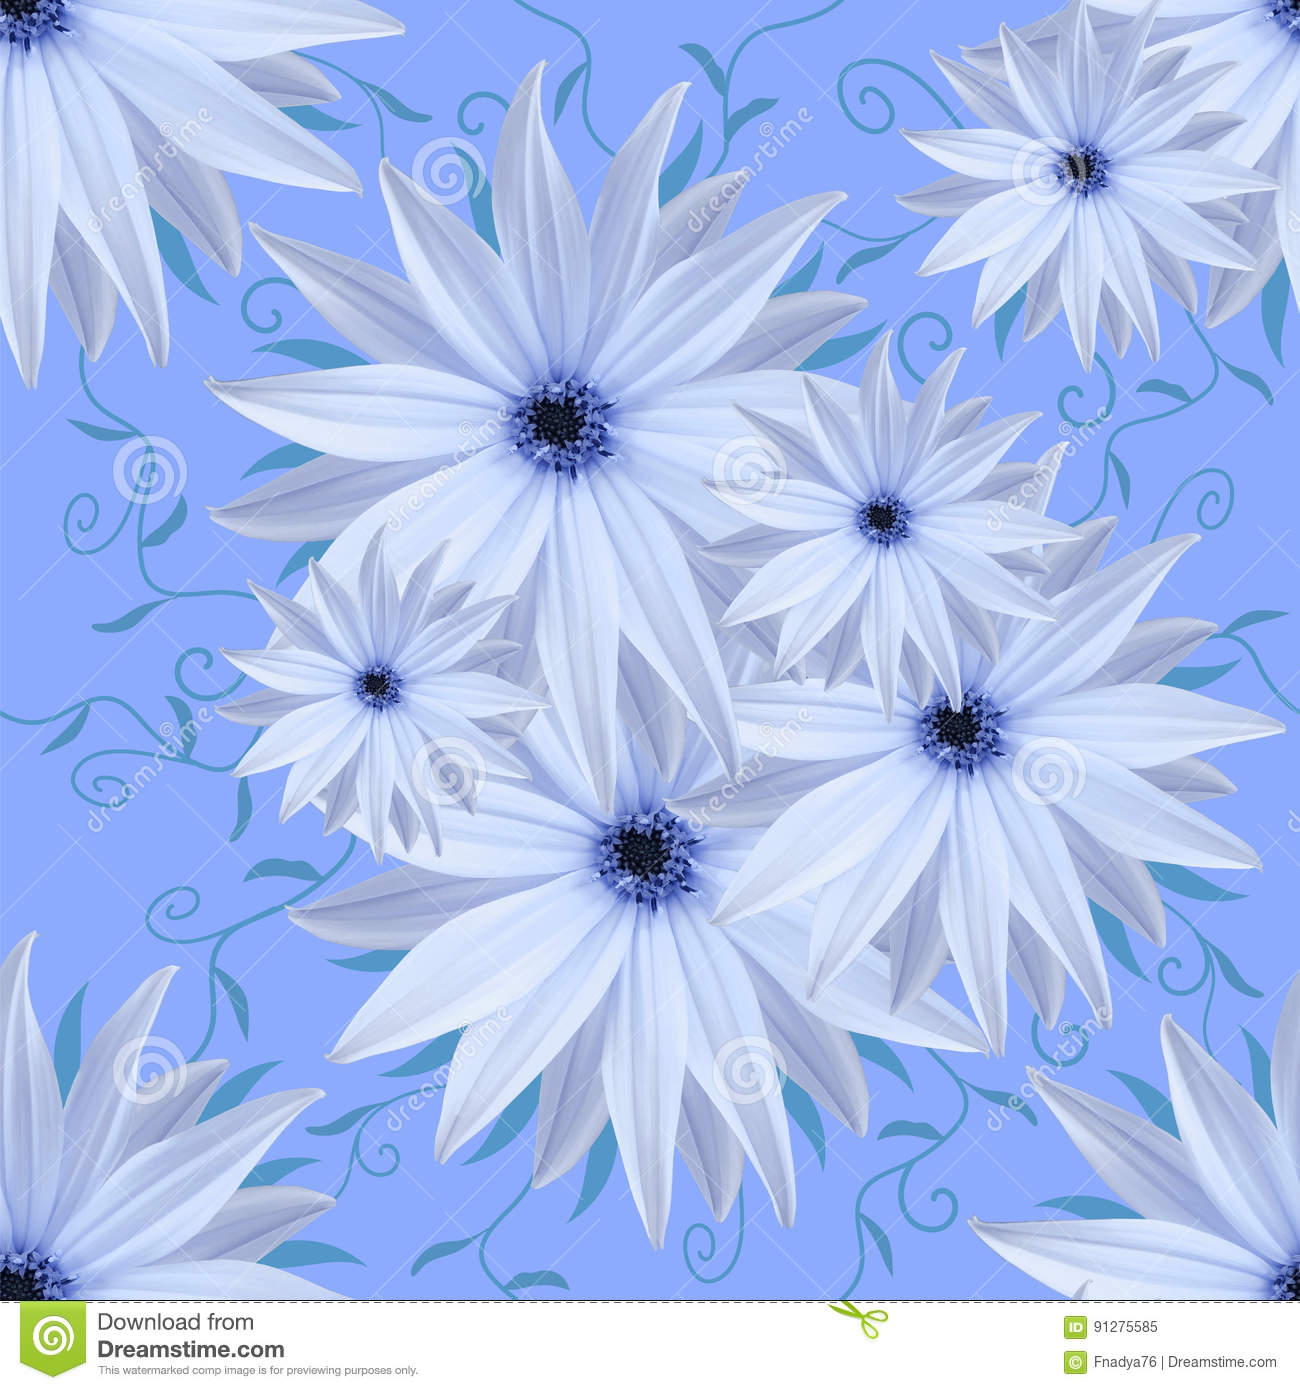 Seamless infinite background floral white blue flowers for seamless infinite background floral white blue flowers for design and printing background of natural flowers dhlflorist Gallery